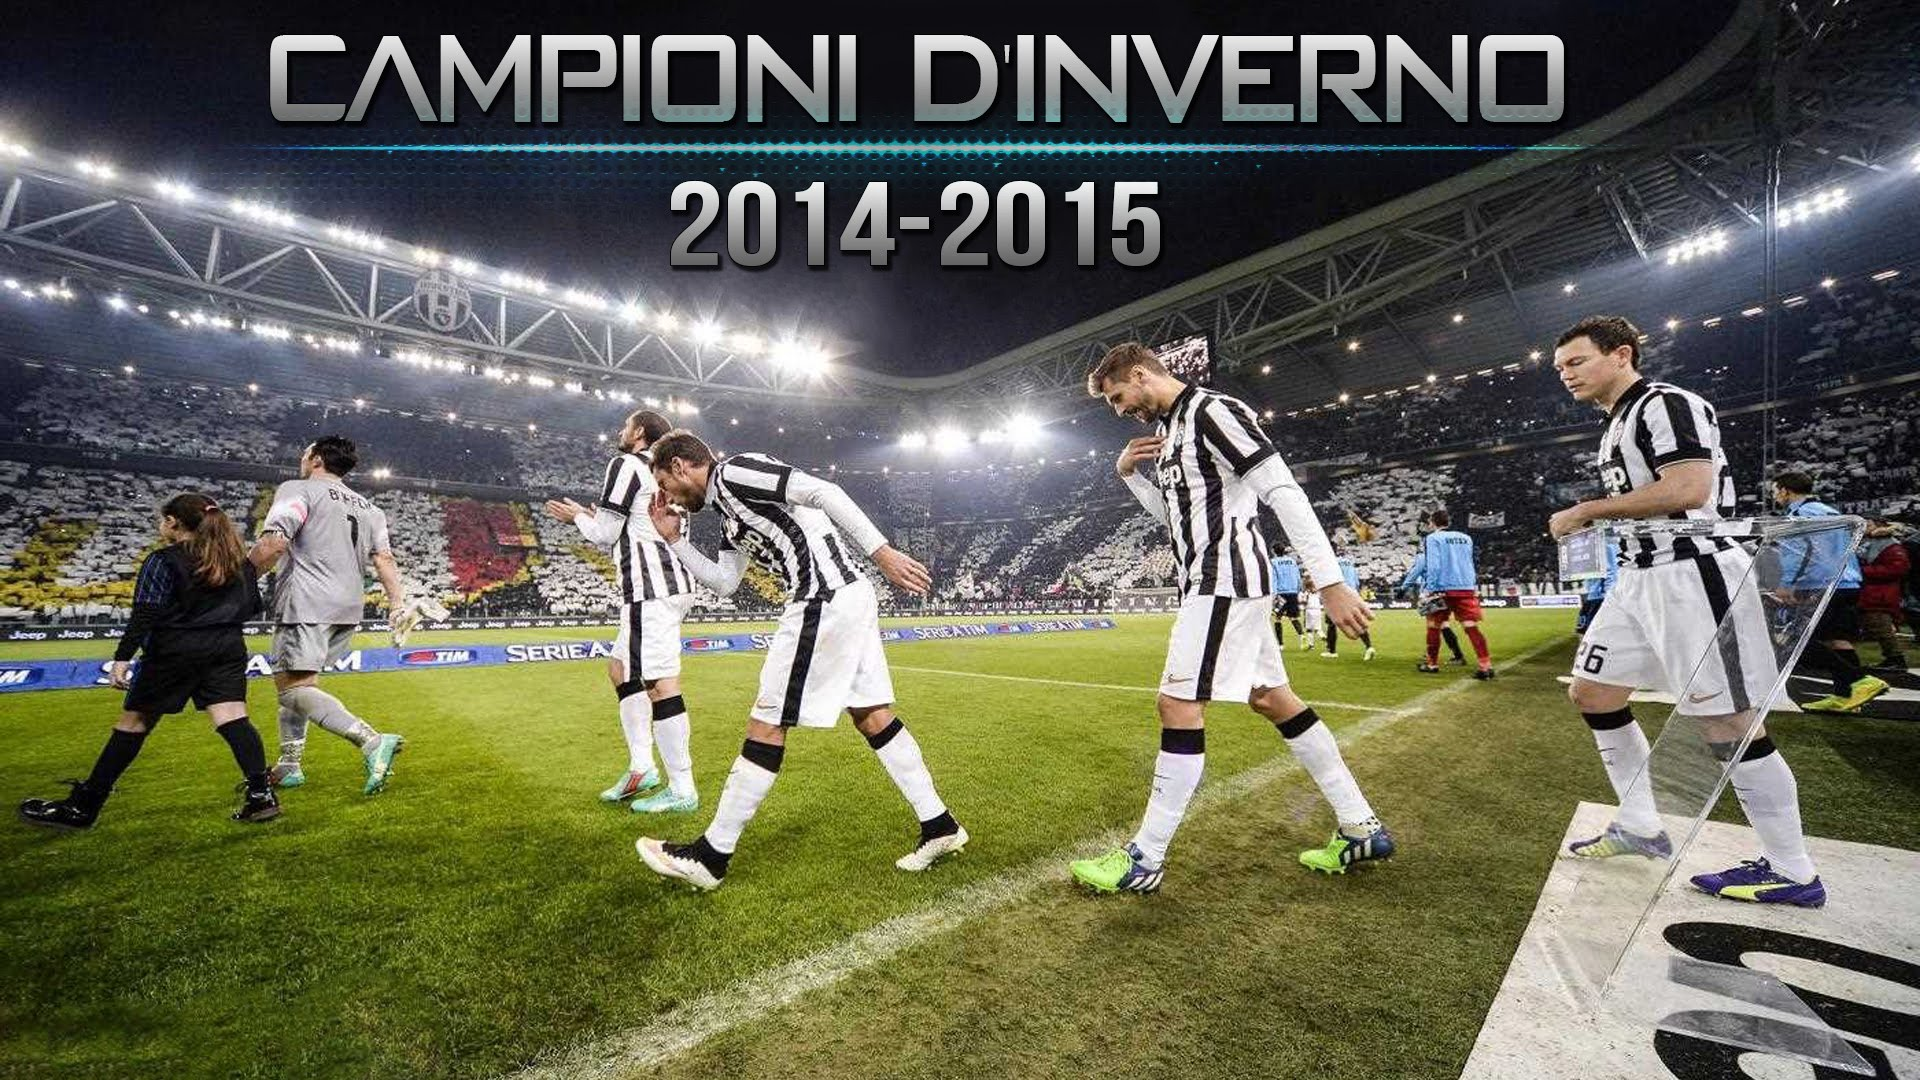 50 ] Juventus Wallpaper 2015 On WallpaperSafari